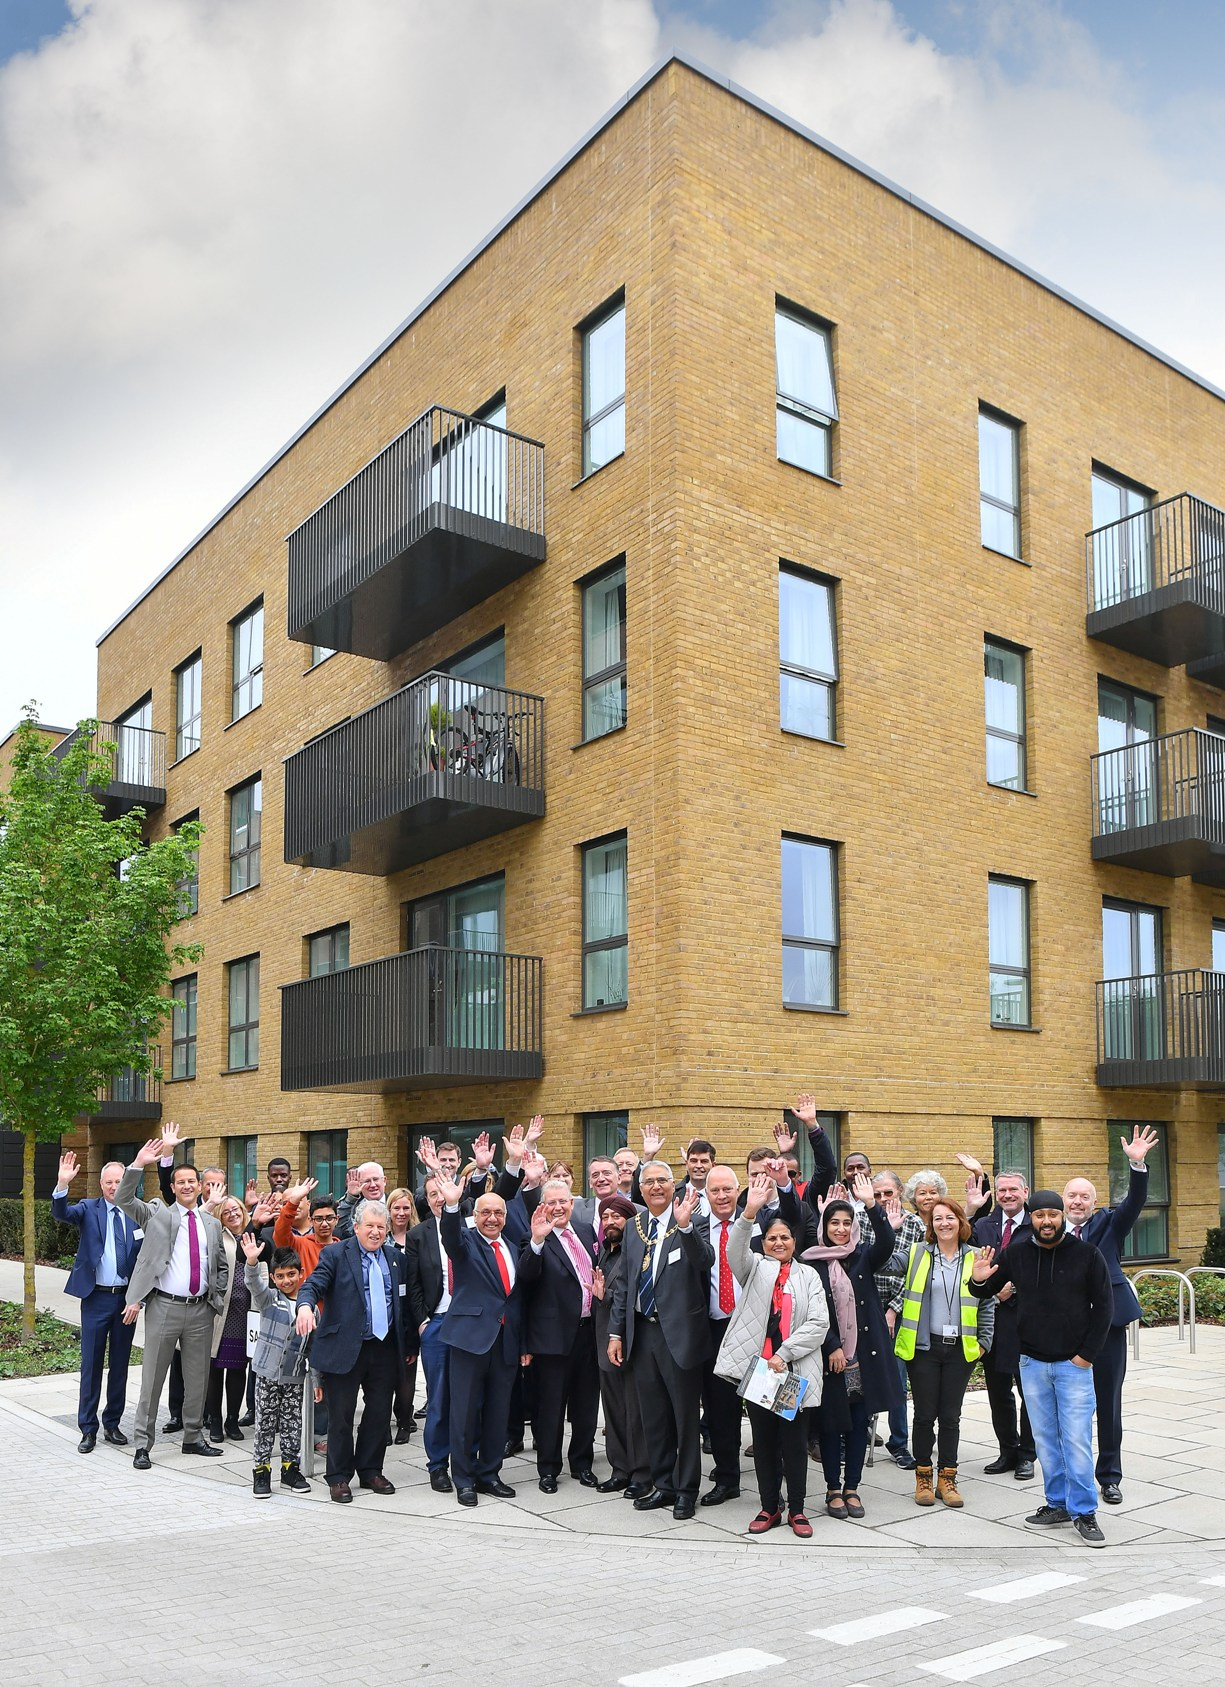 First of many: initial residents are welcomed to the former gasworks site